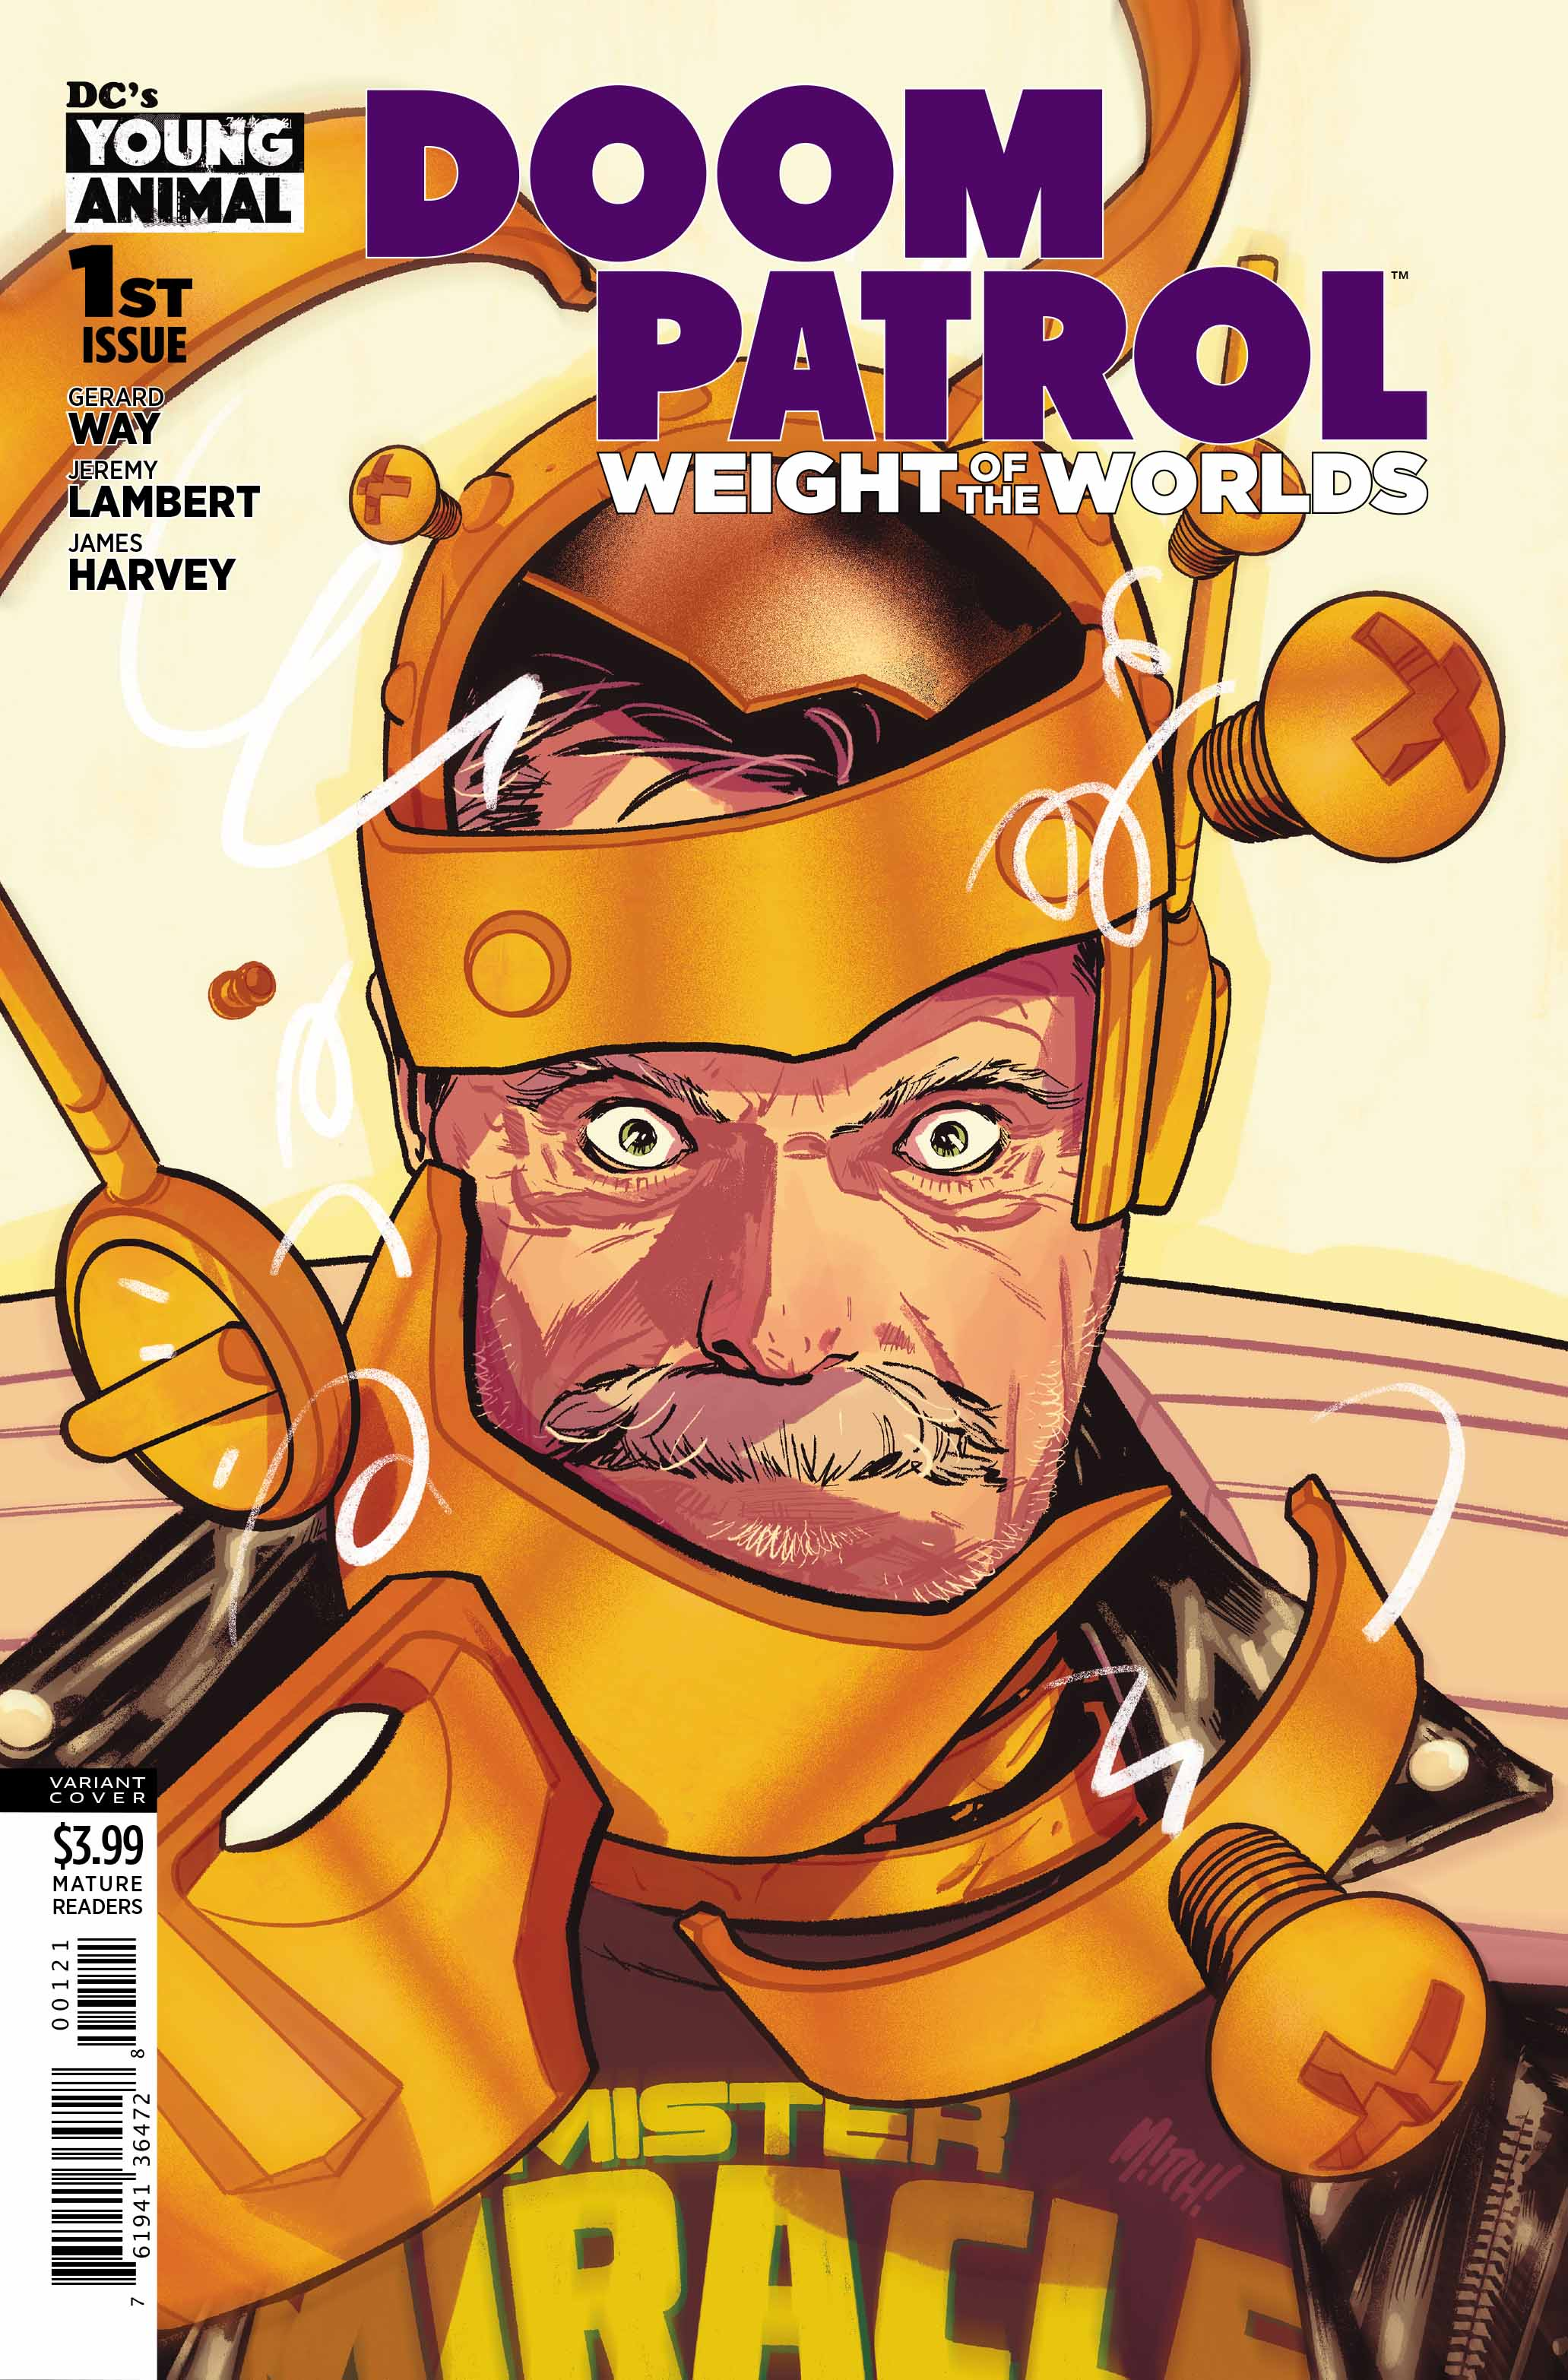 Doom Patrol Weight of the Worlds #1